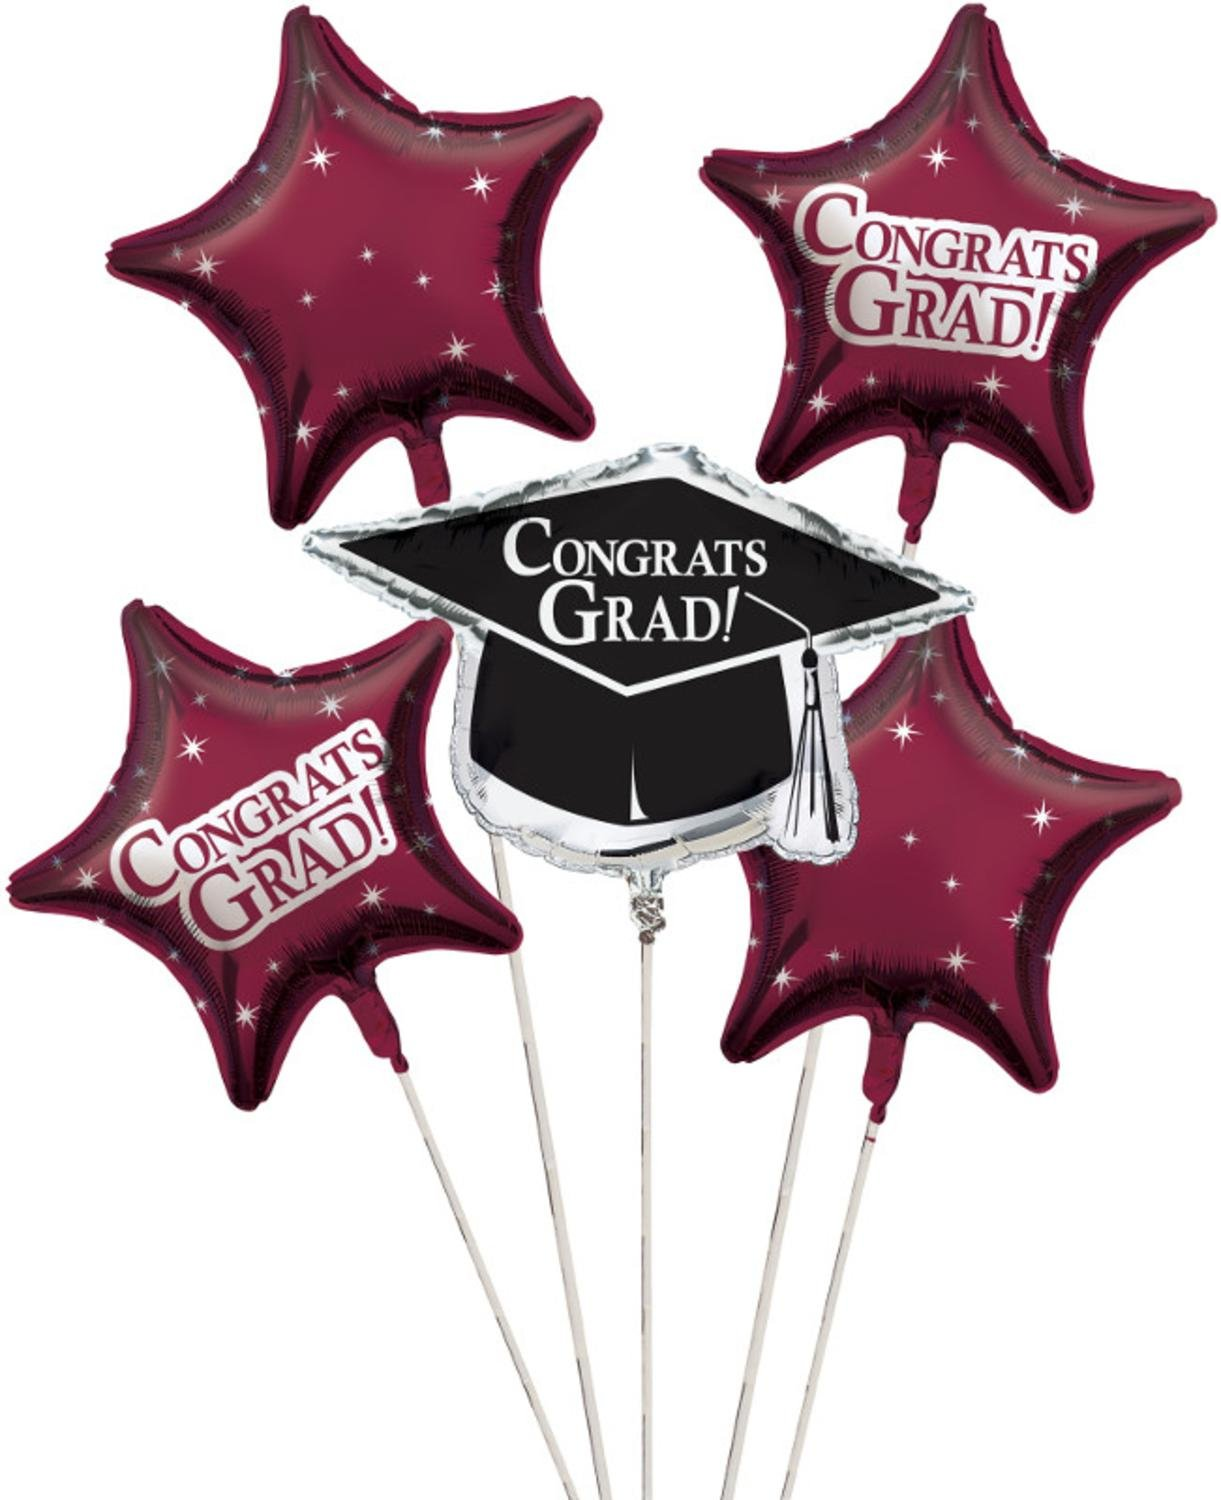 Club Pack of 12 Burgundy Red Metallic Foil ''Congrats Grad'' Graduation Day Party Balloon Clusters by Party Central